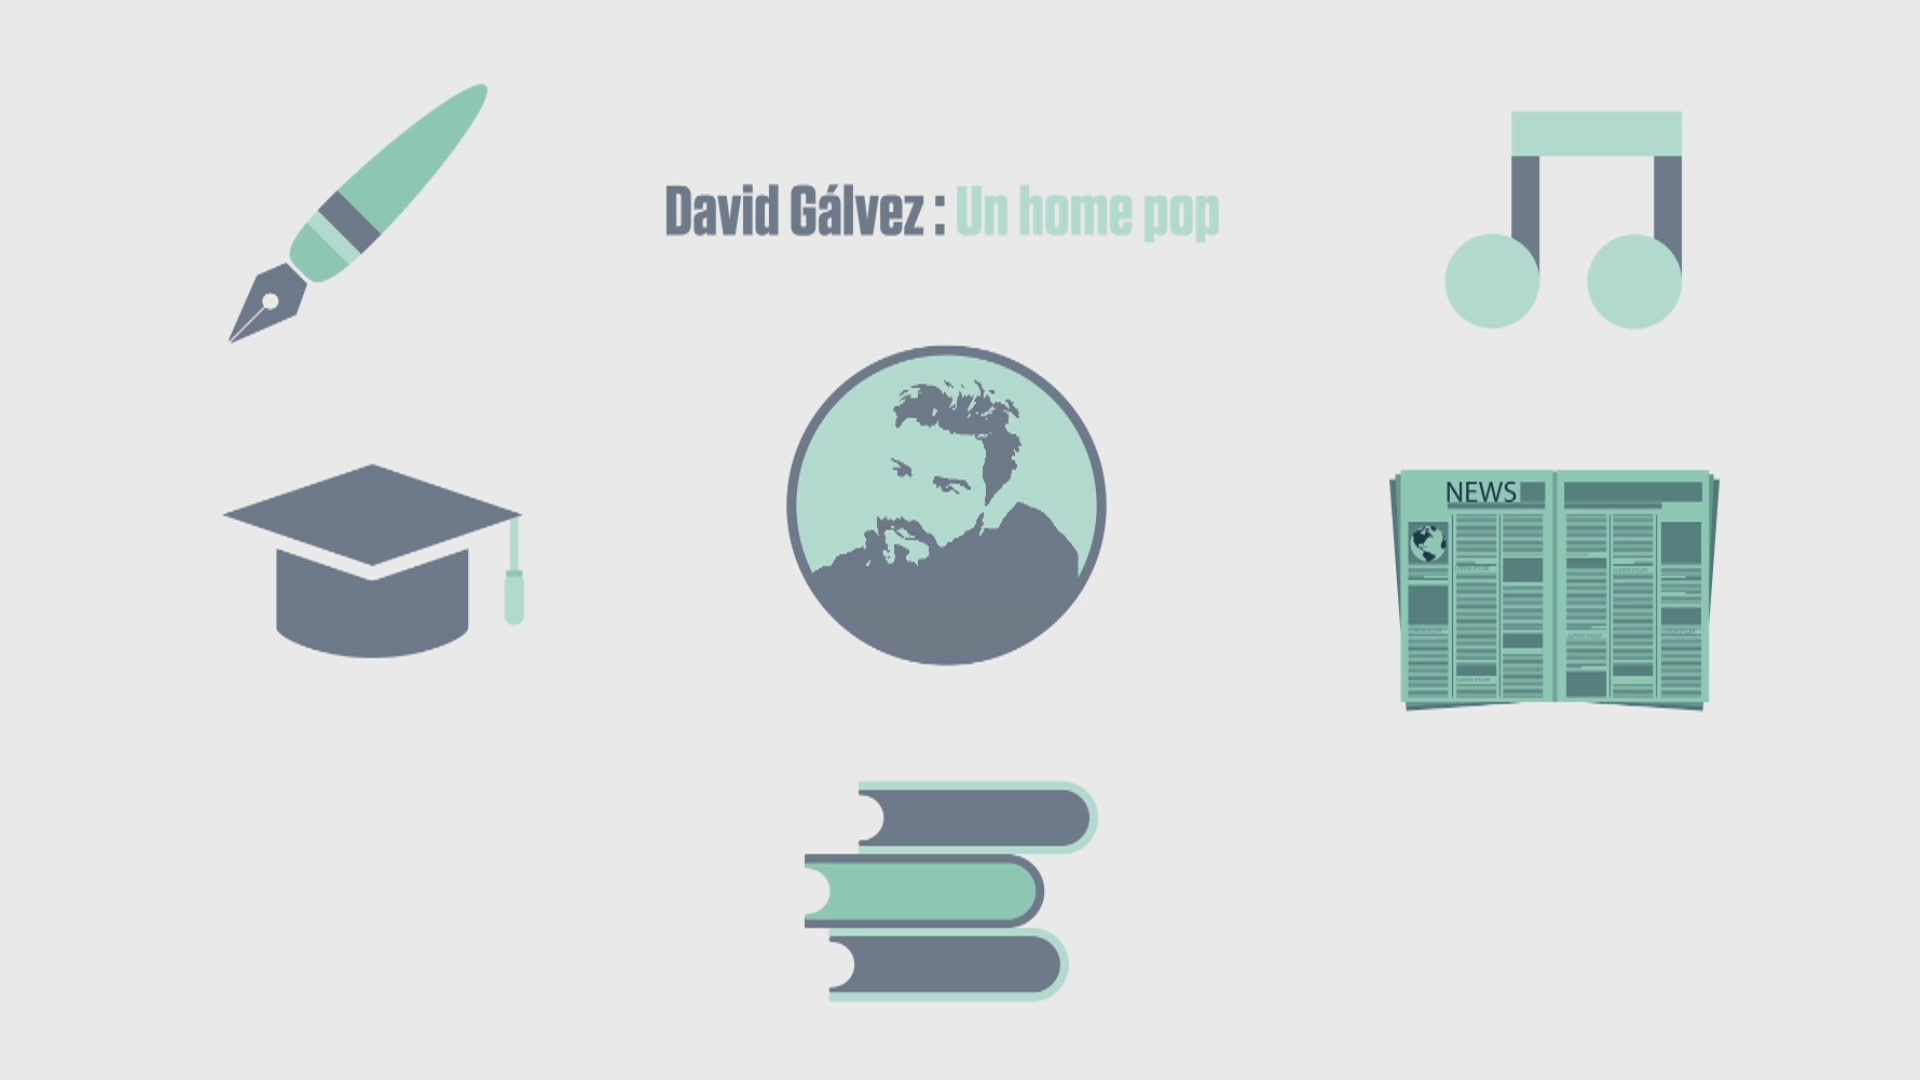 David Gálvez: un home pop